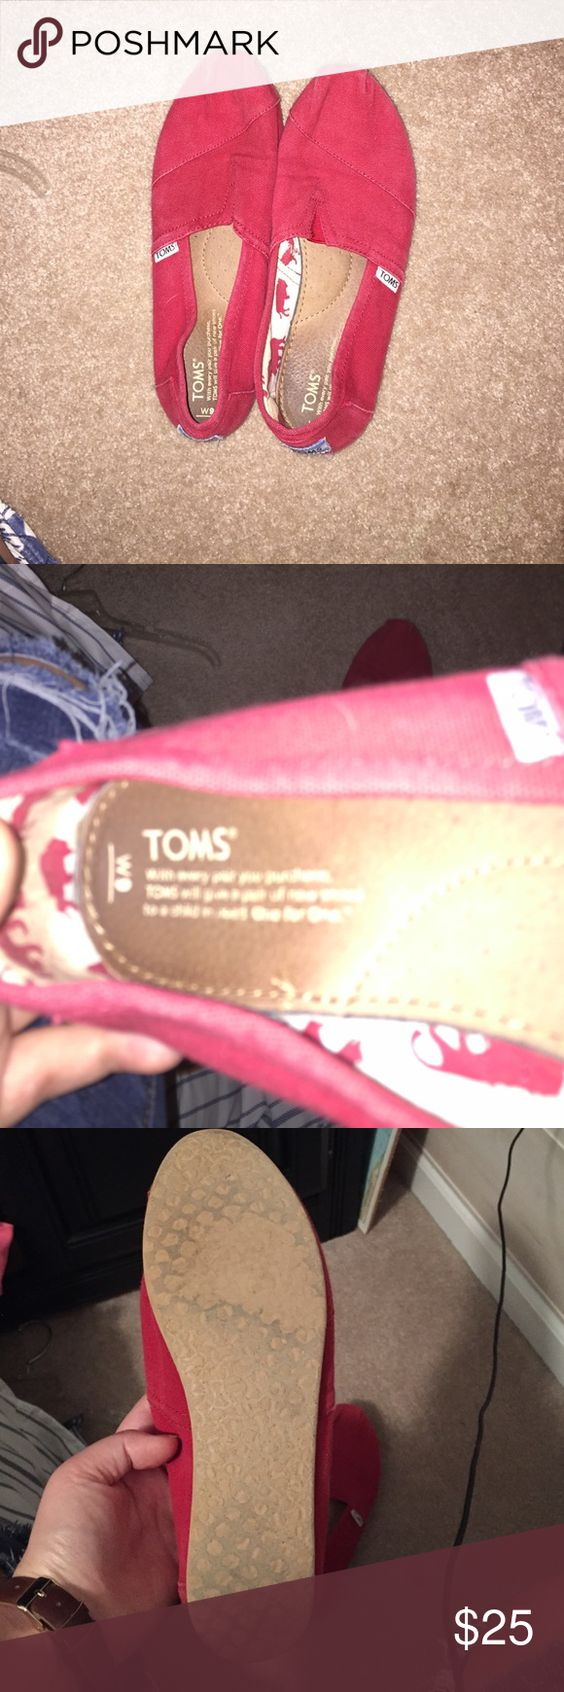 Women's size 9 red TOMS Red TOMS. Size 9. Lightly worn. VERY good condition. |OFFERS WELCOME| TOMS Shoes